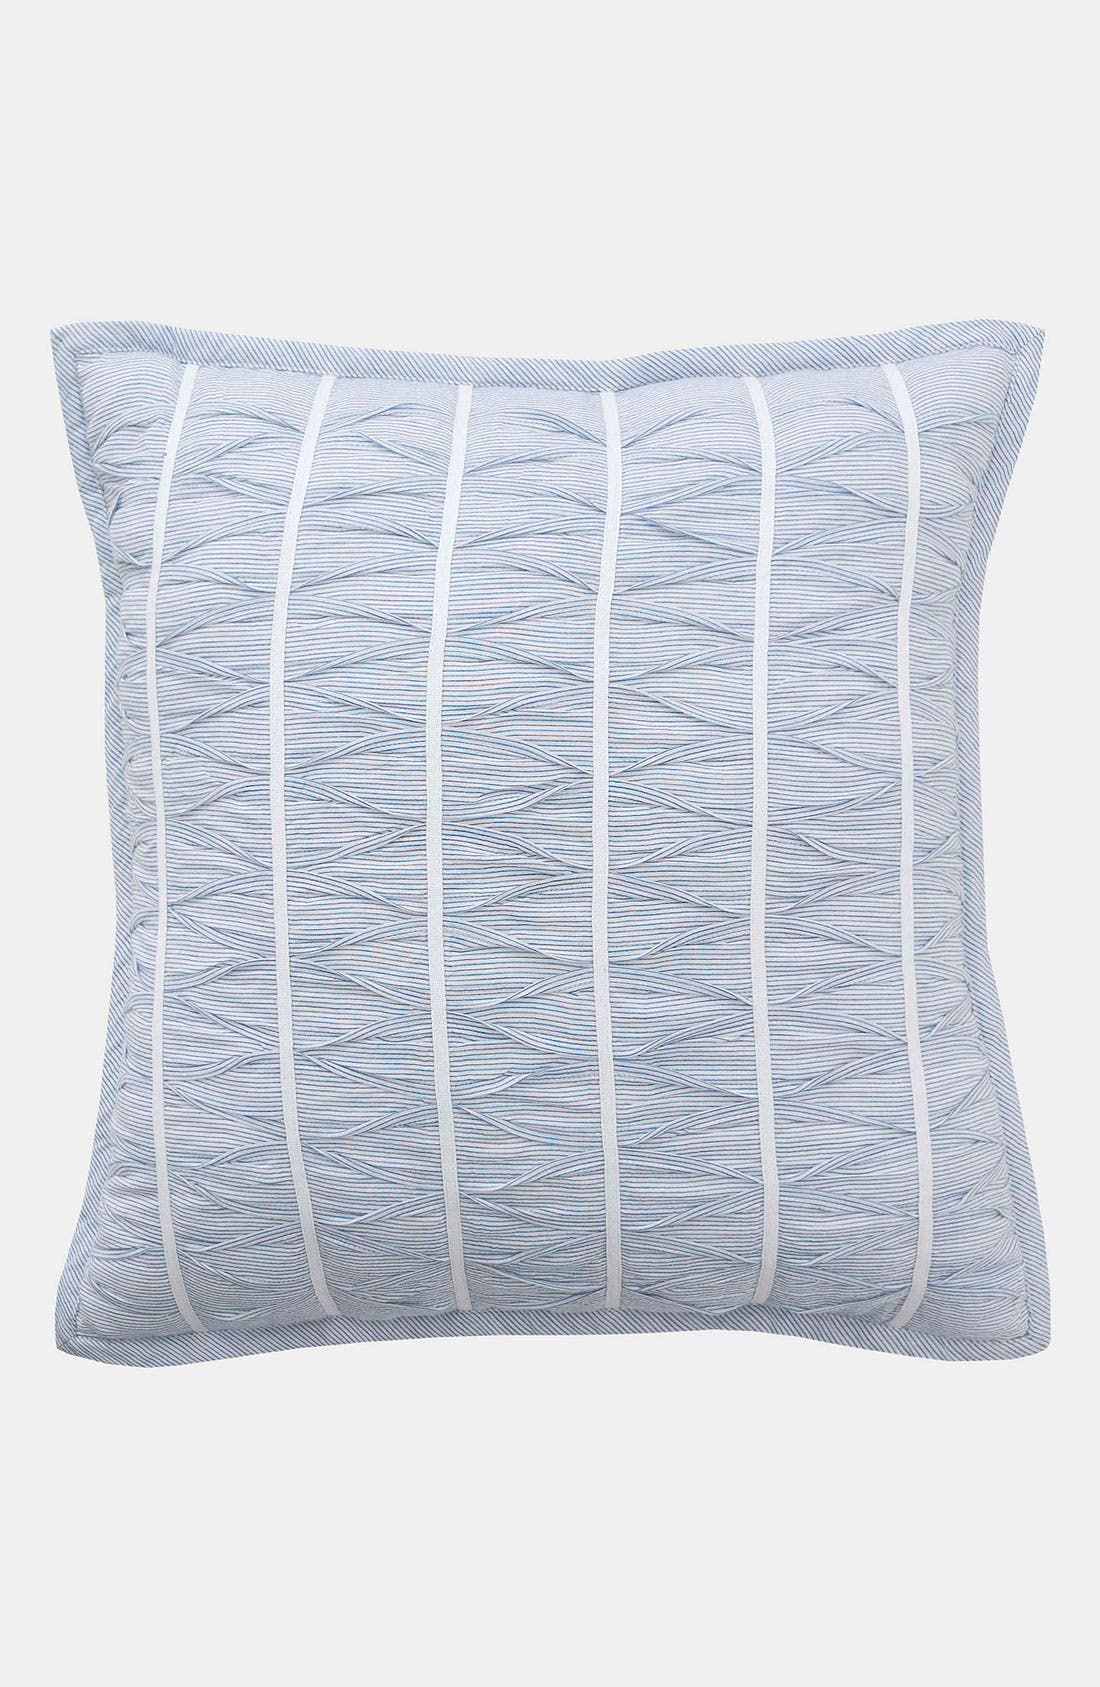 Main Image - DKNY 'Pure Innocence' Pillow